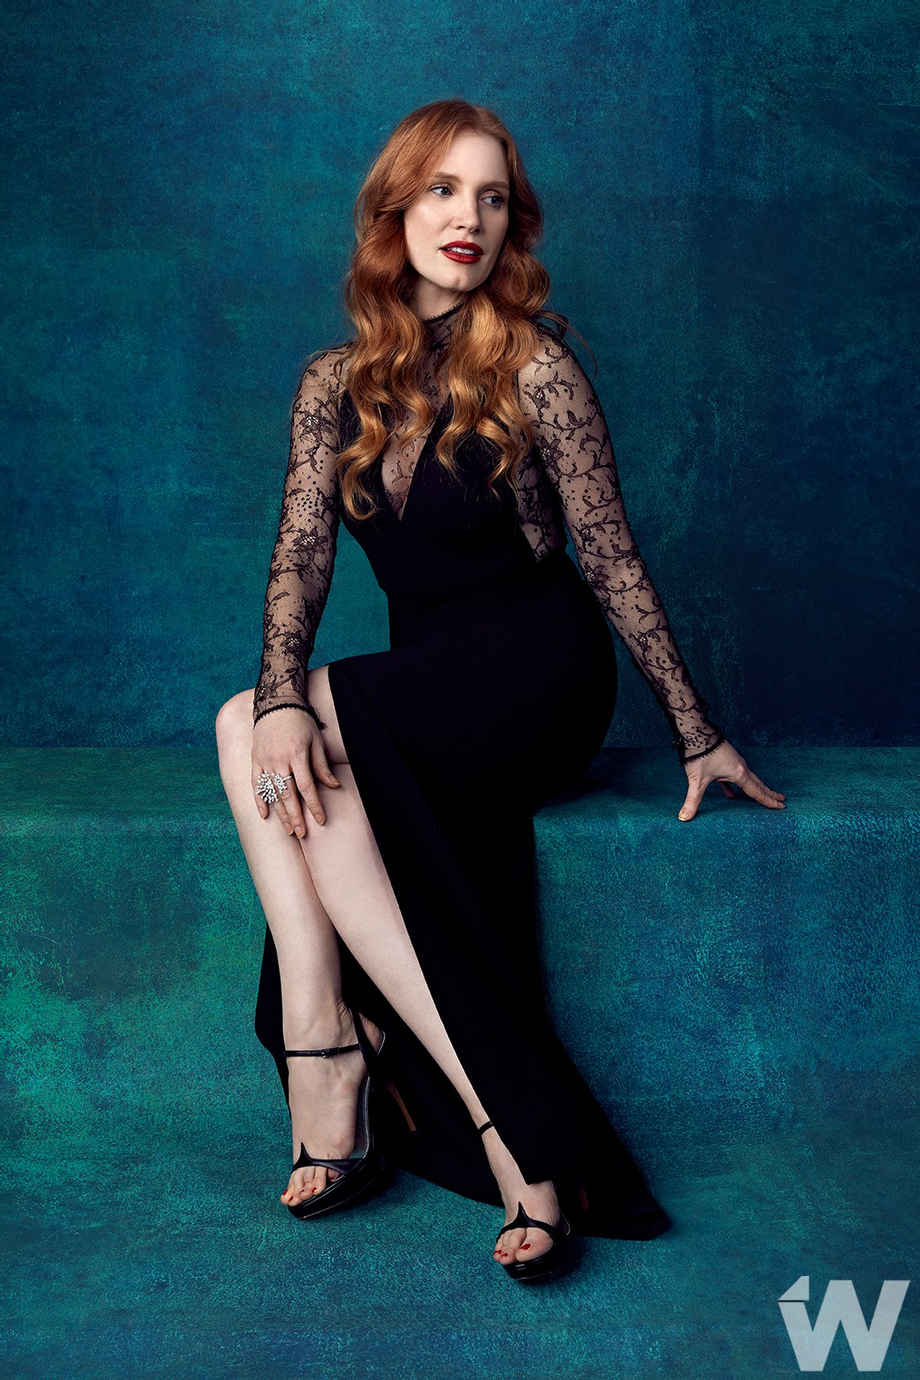 Jessica\'s portrait by Corina Marie for The Wrap at 29th Annual Palm Springs International Film Festival | Jessica Chastain  Porn XXX | Celebrity Nakeds XXX